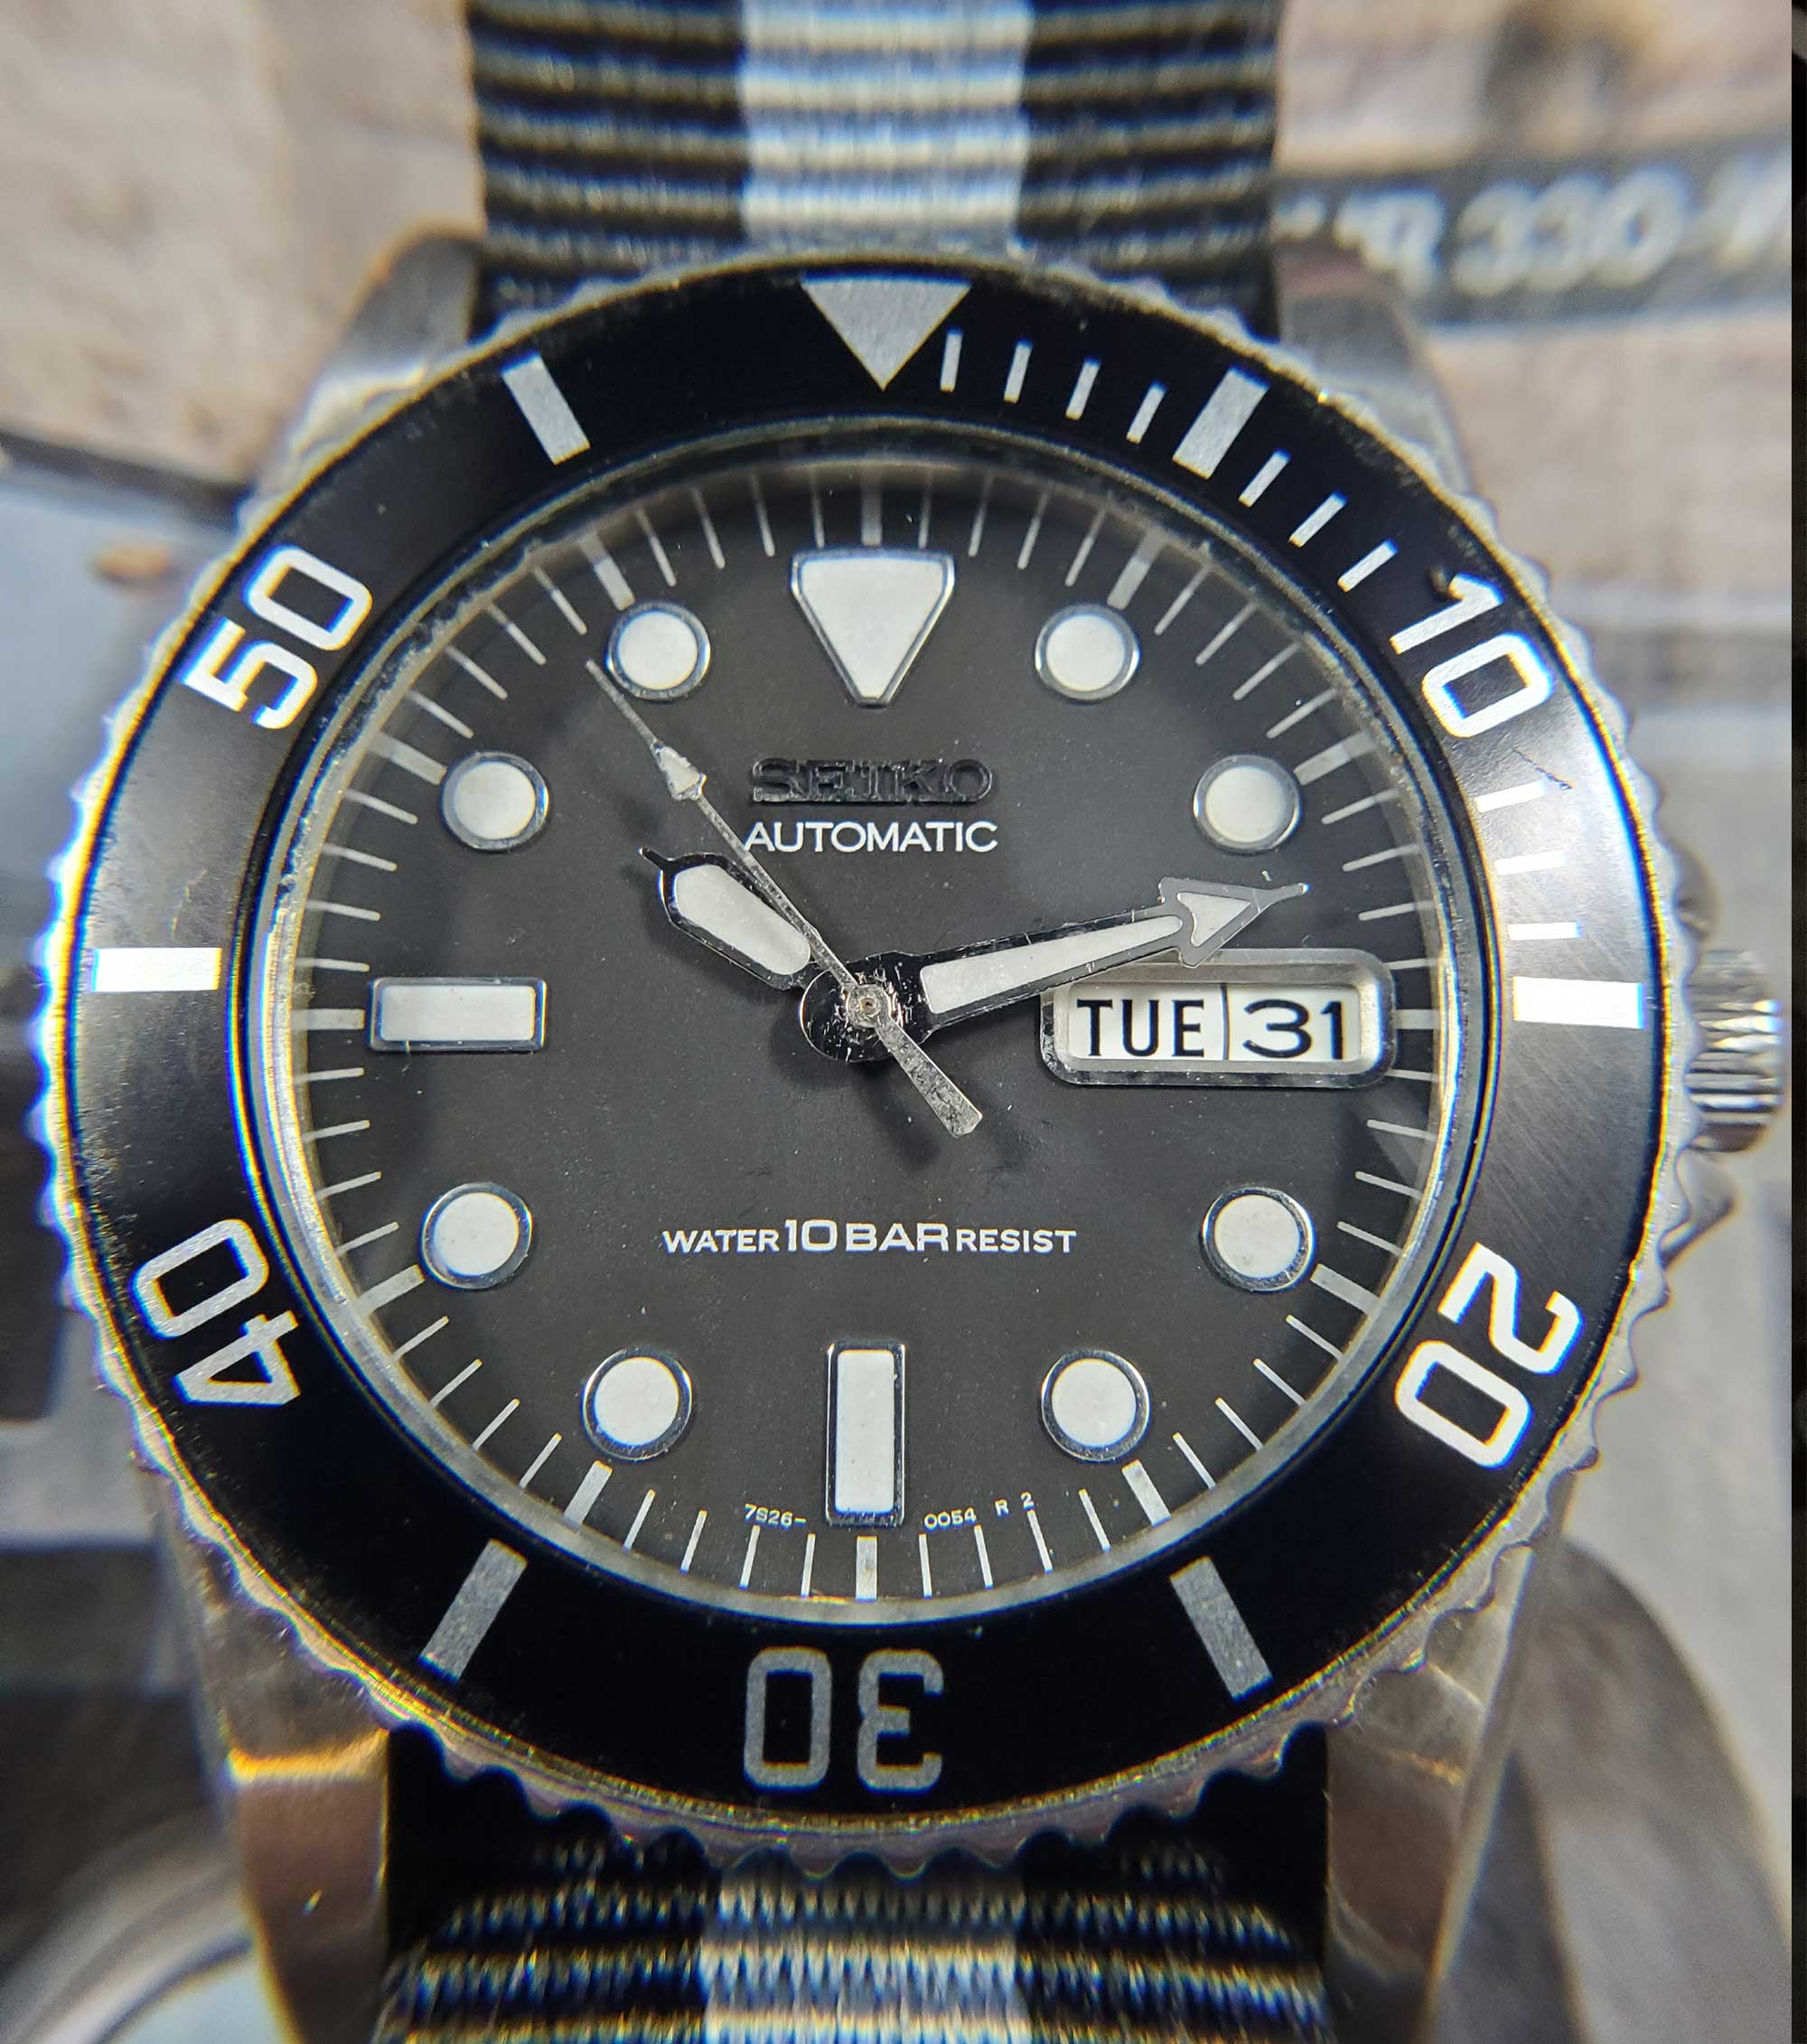 1993 Seiko 7S26 automatic dive watch